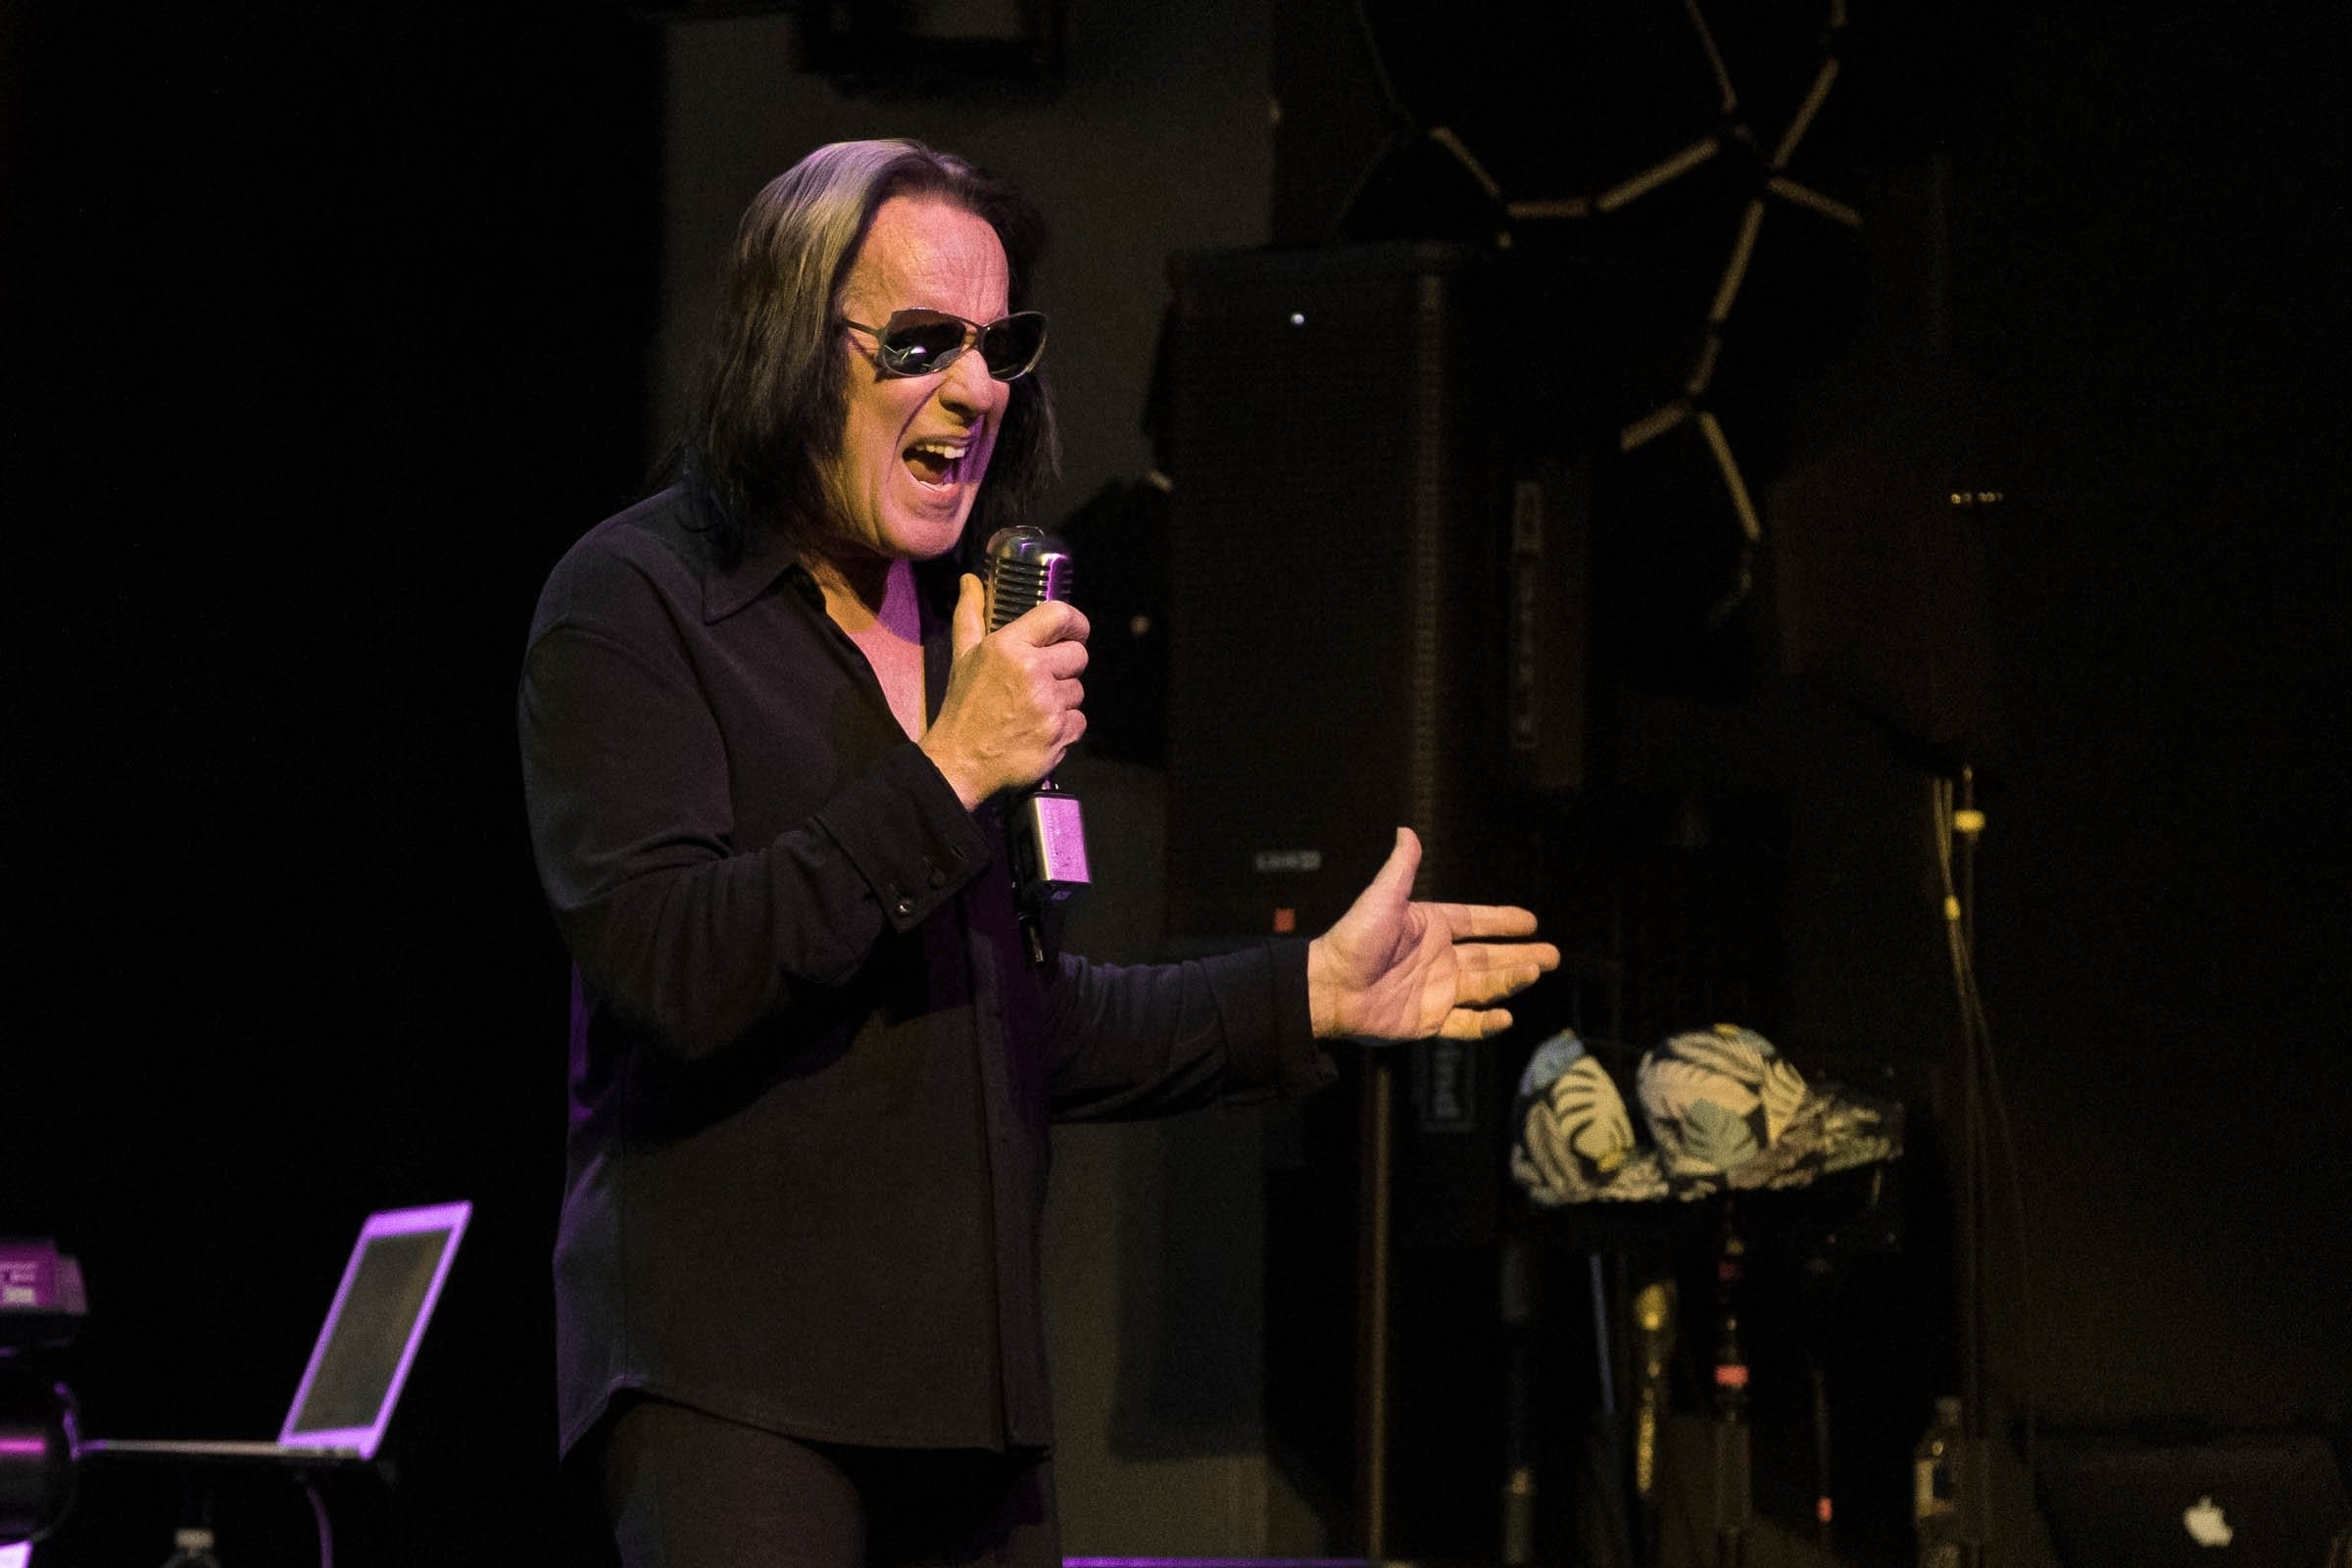 Todd Rundgren to play  geo-fenced  virtual show geared to Austin audiences in March